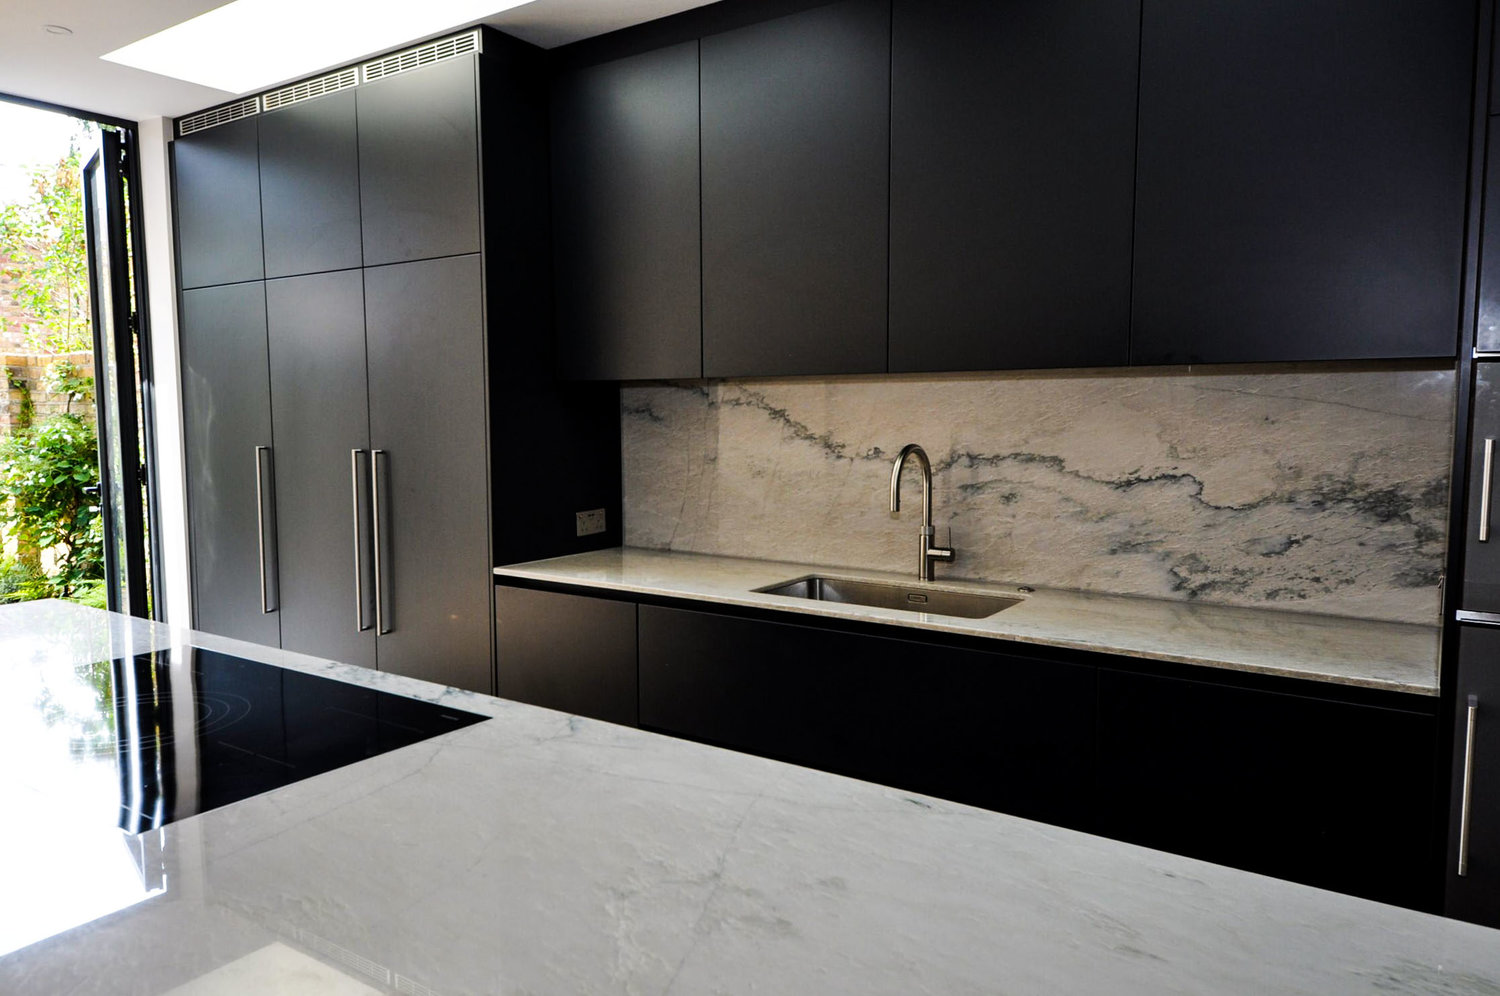 The electric induction hob on a kitchen island, and kitchen sink with marble worktops that create a modern interior design that's naturally lit for a completed Kitchen Extension in West Hampstead